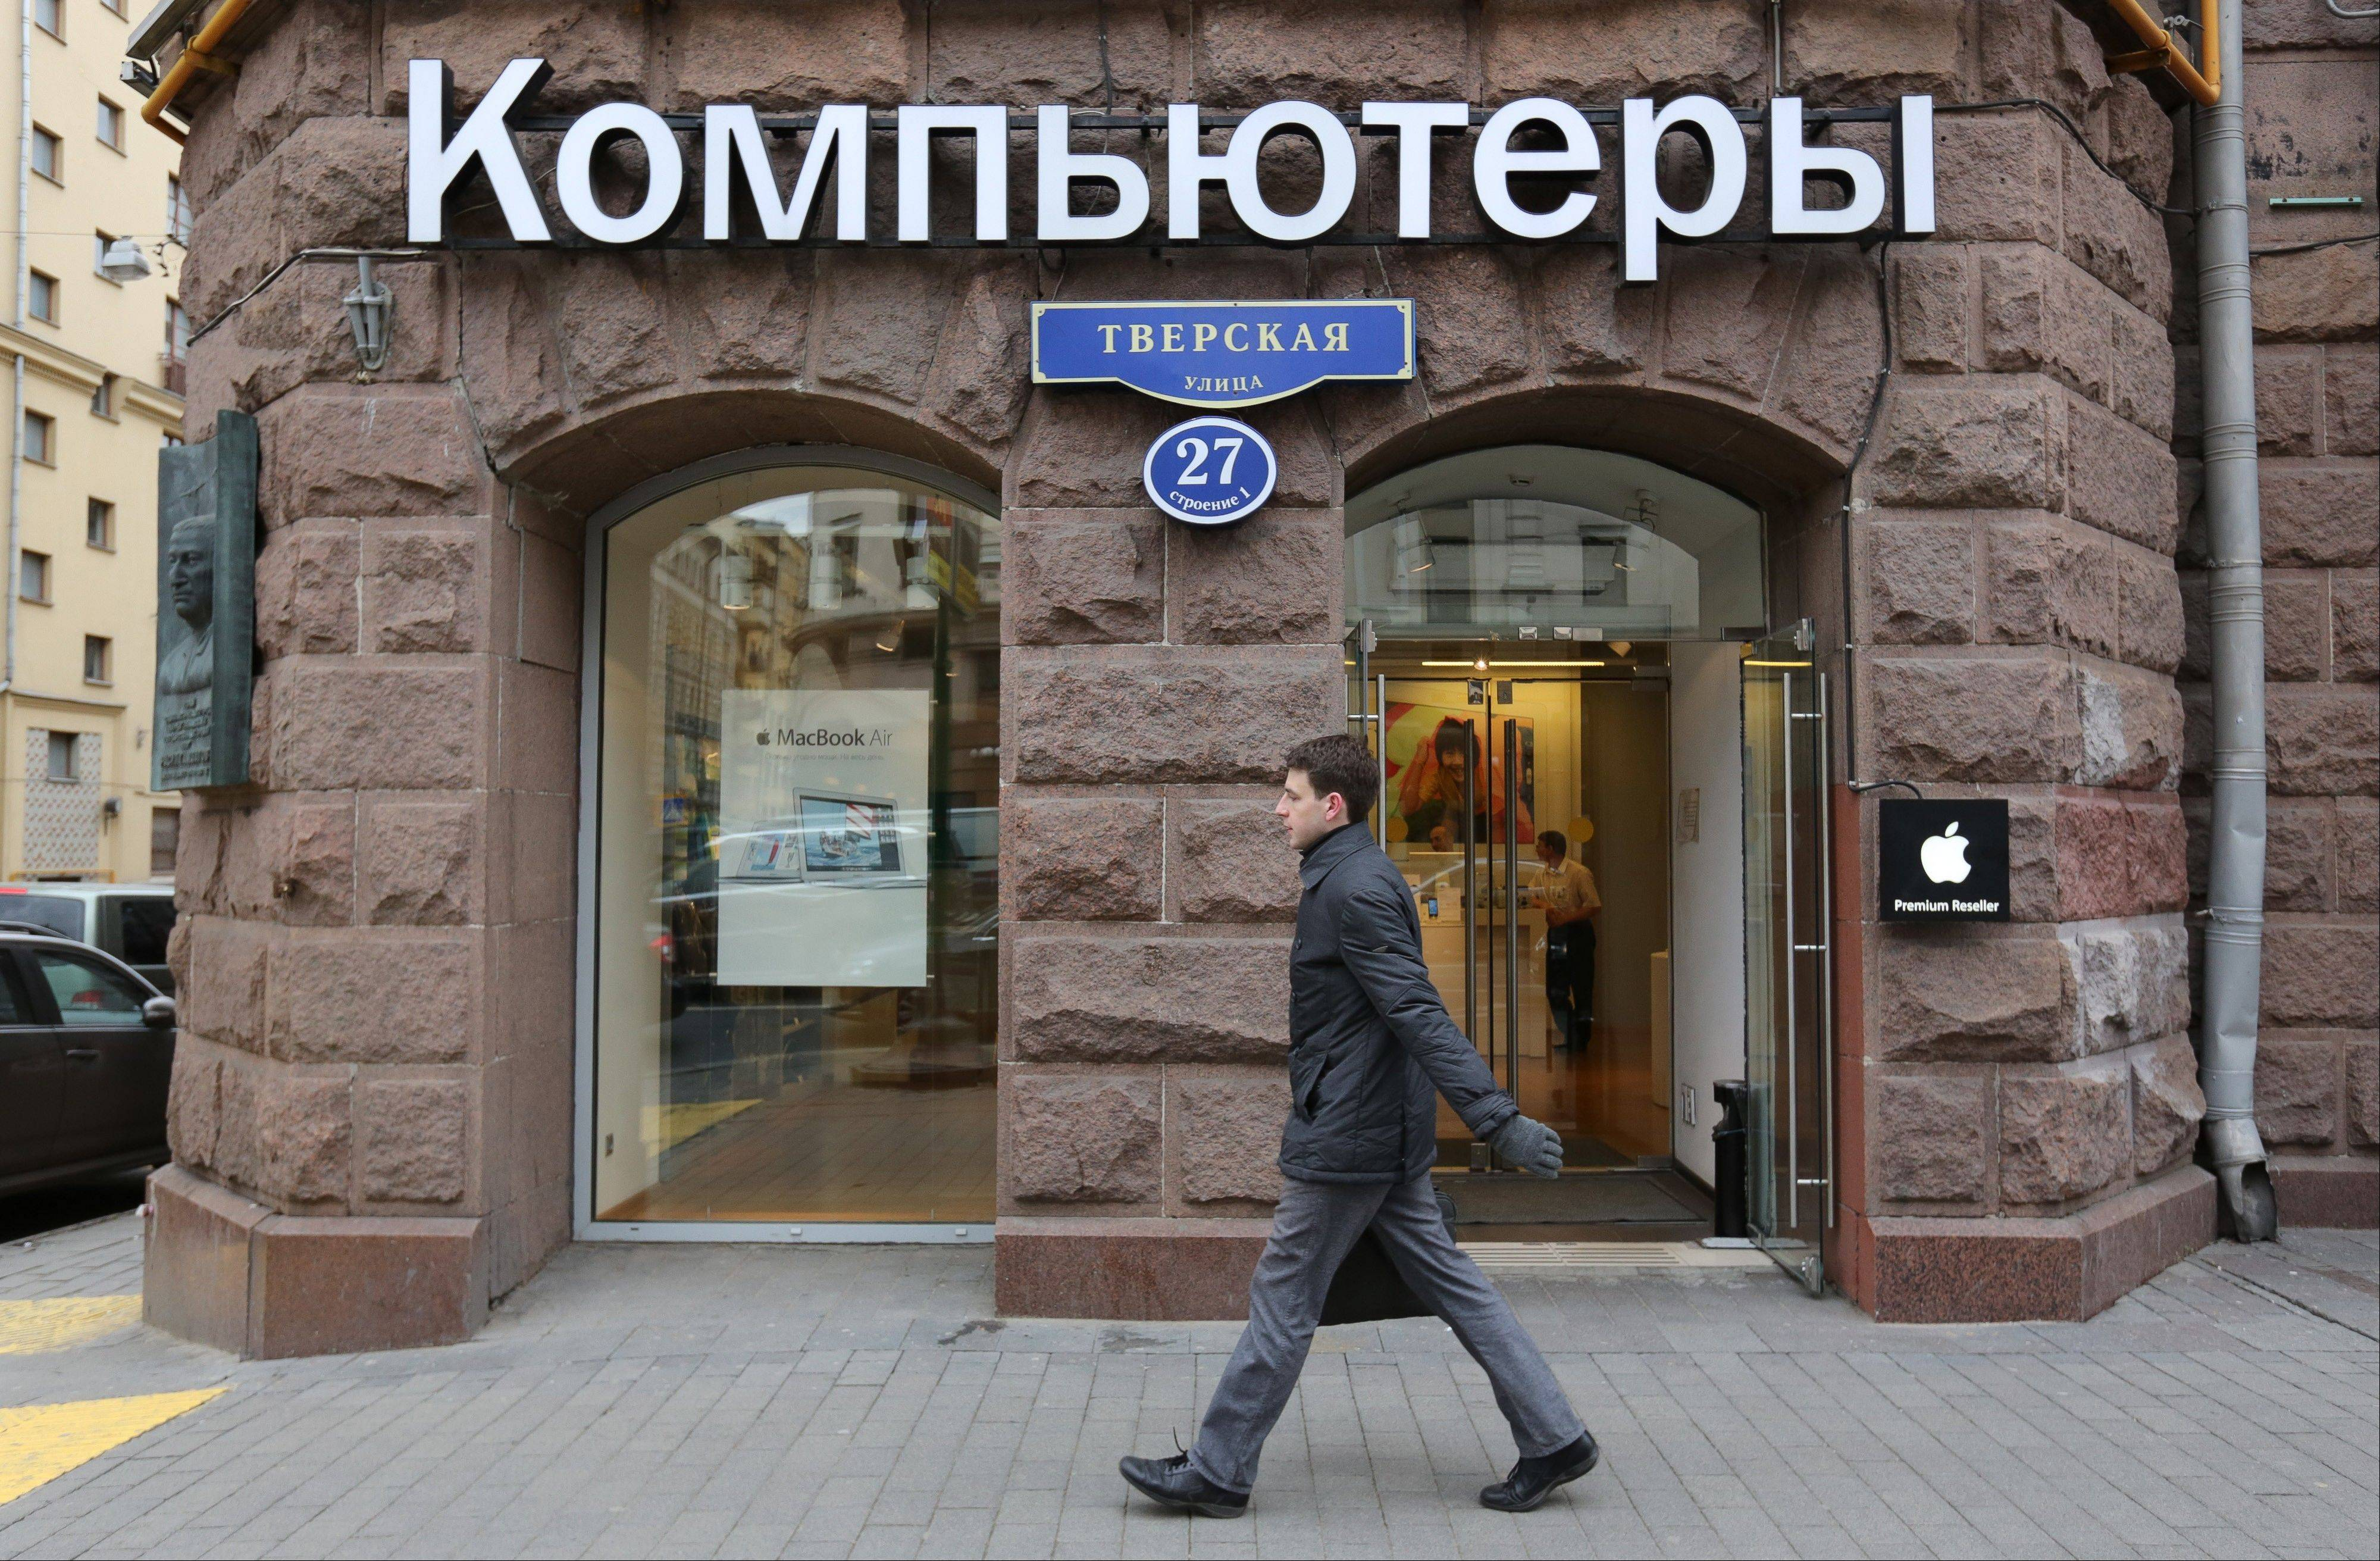 A pedestrian passes the entrance to a re:Store premium Apple Inc. reseller in Moscow.